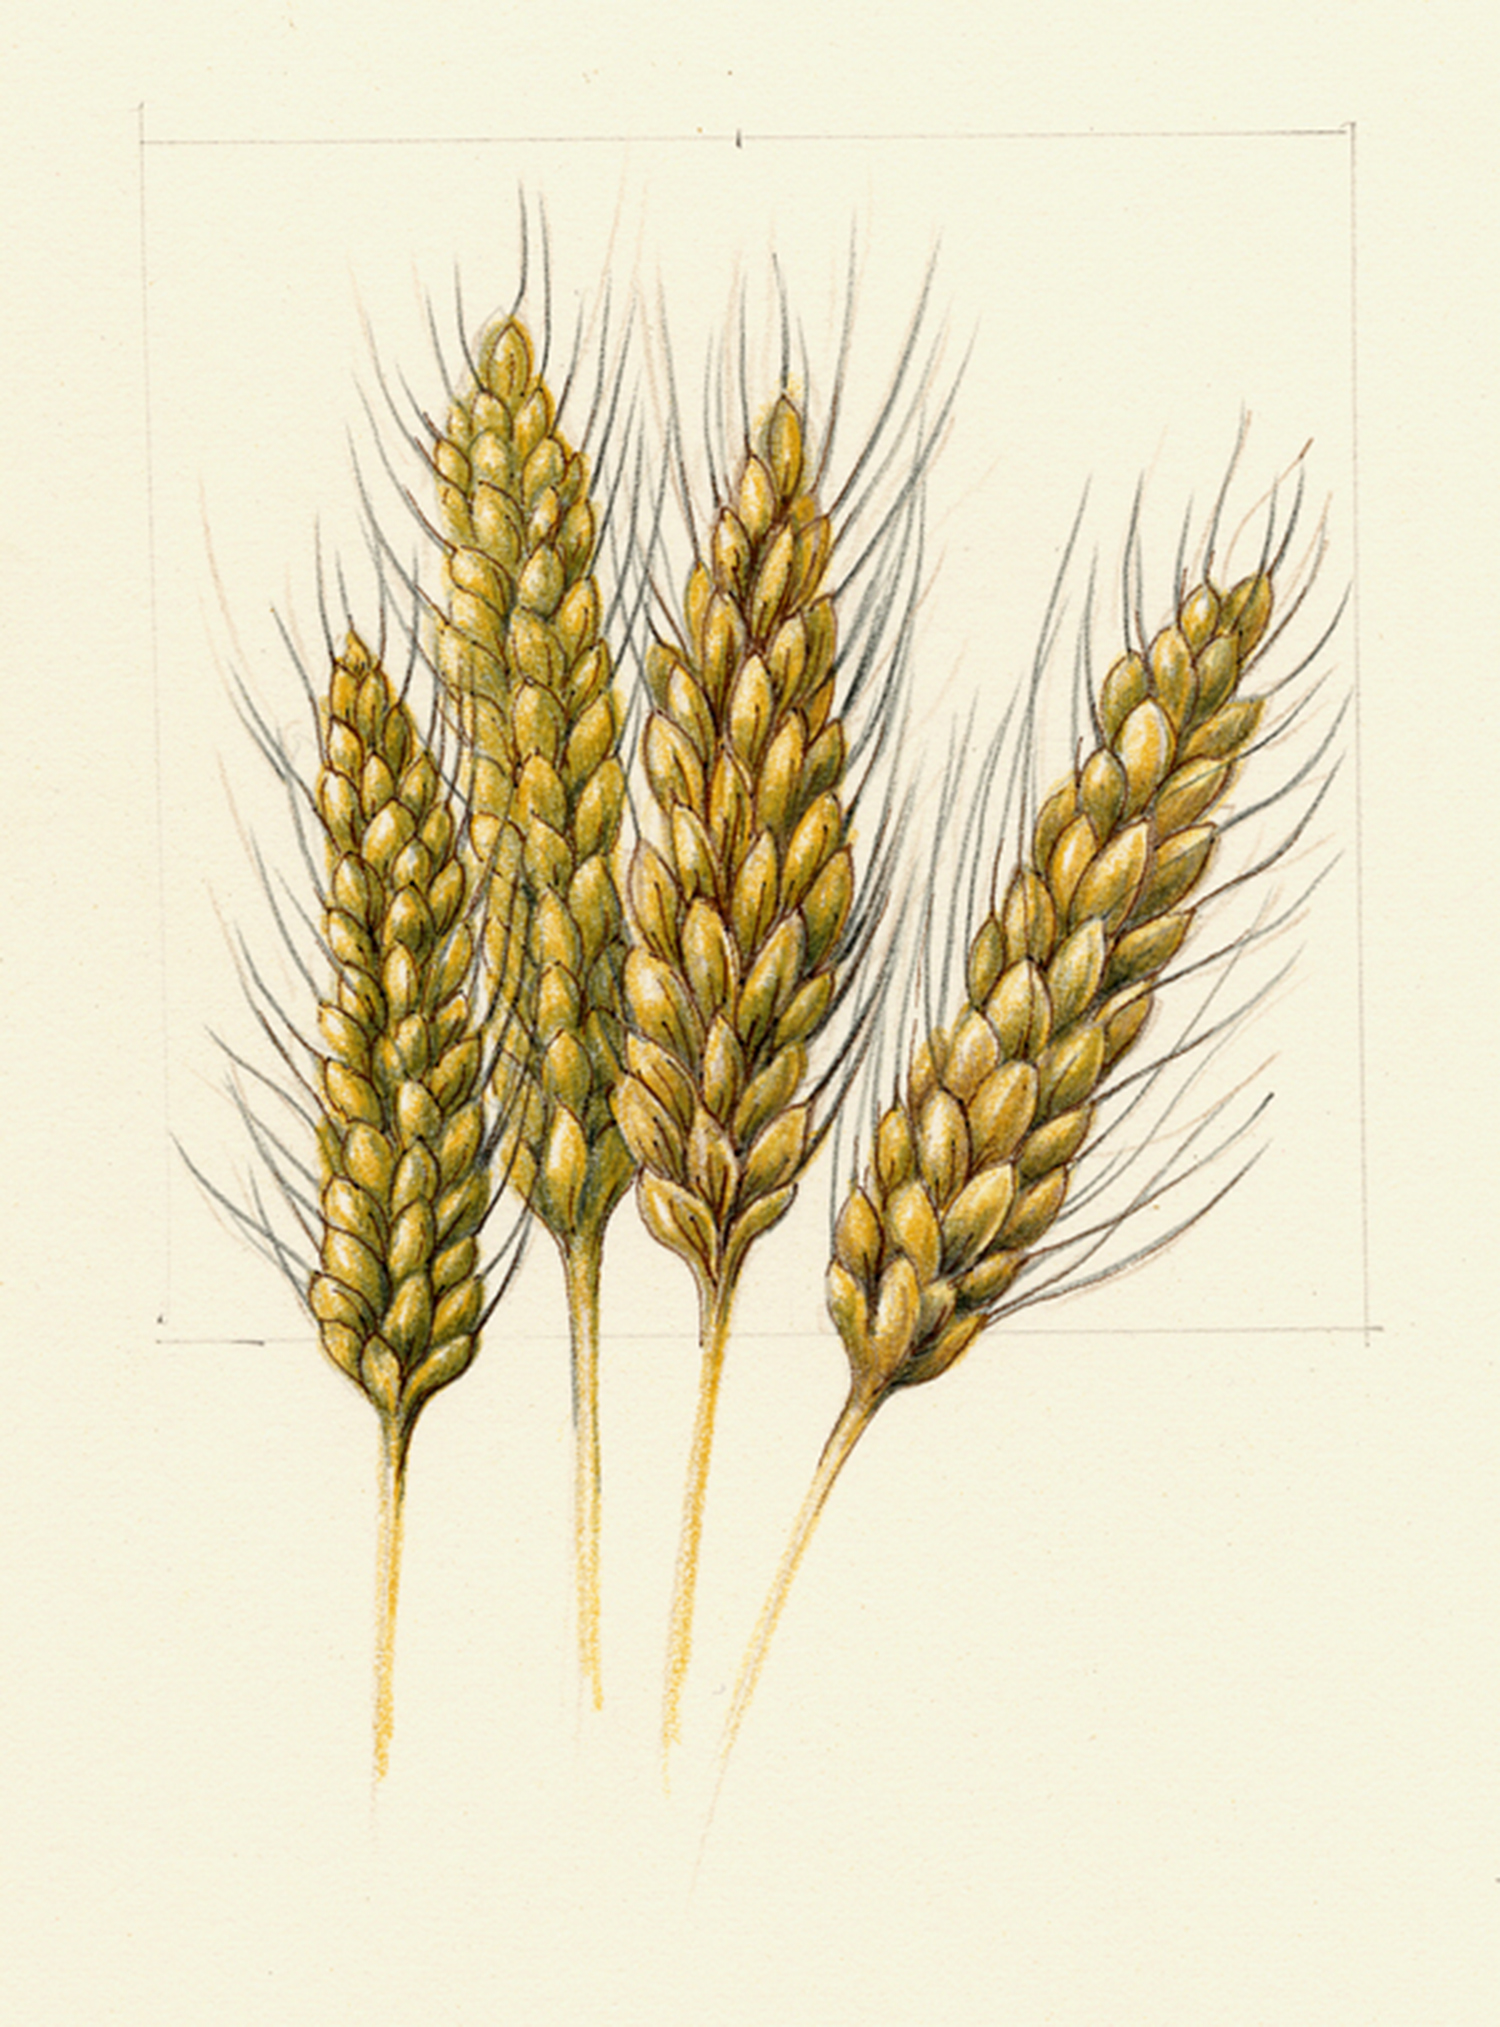 Wheat - Triticum